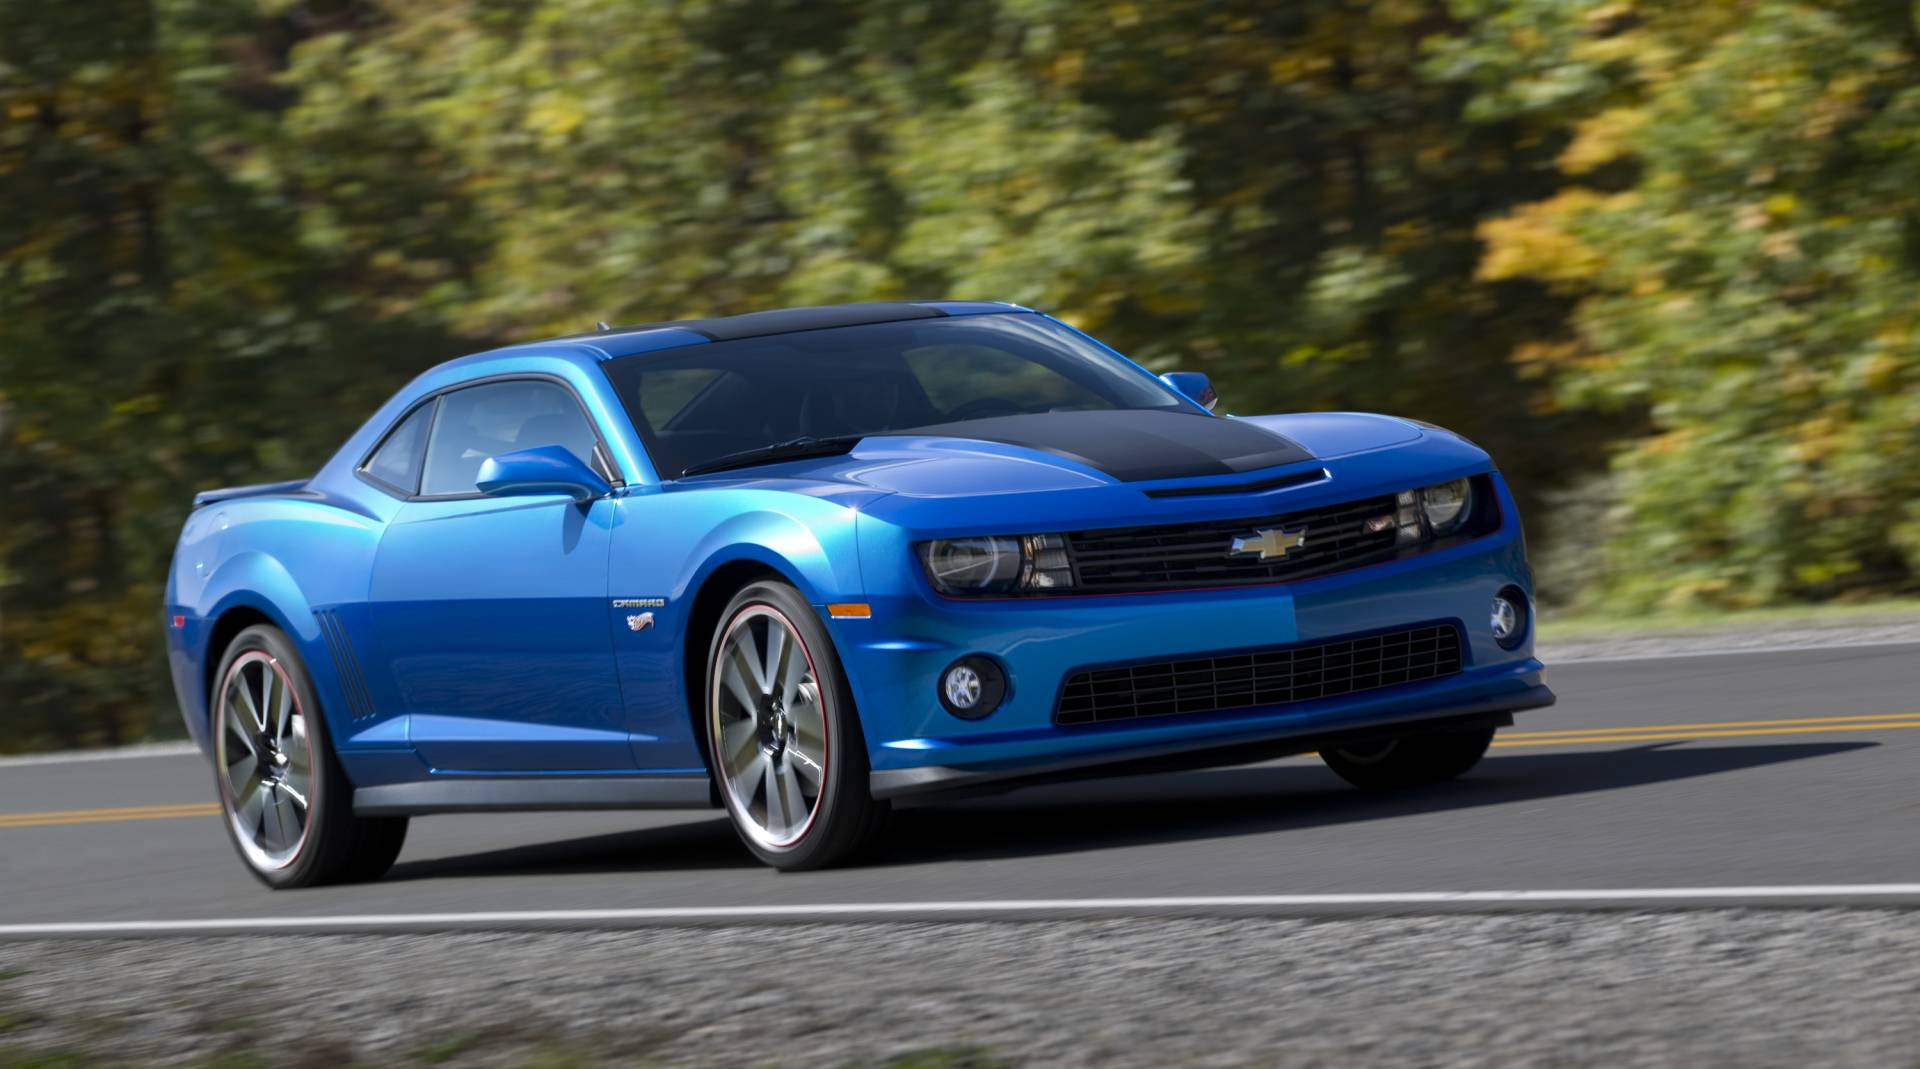 2012 chevrolet camaro hot wheels edition news and information. Black Bedroom Furniture Sets. Home Design Ideas